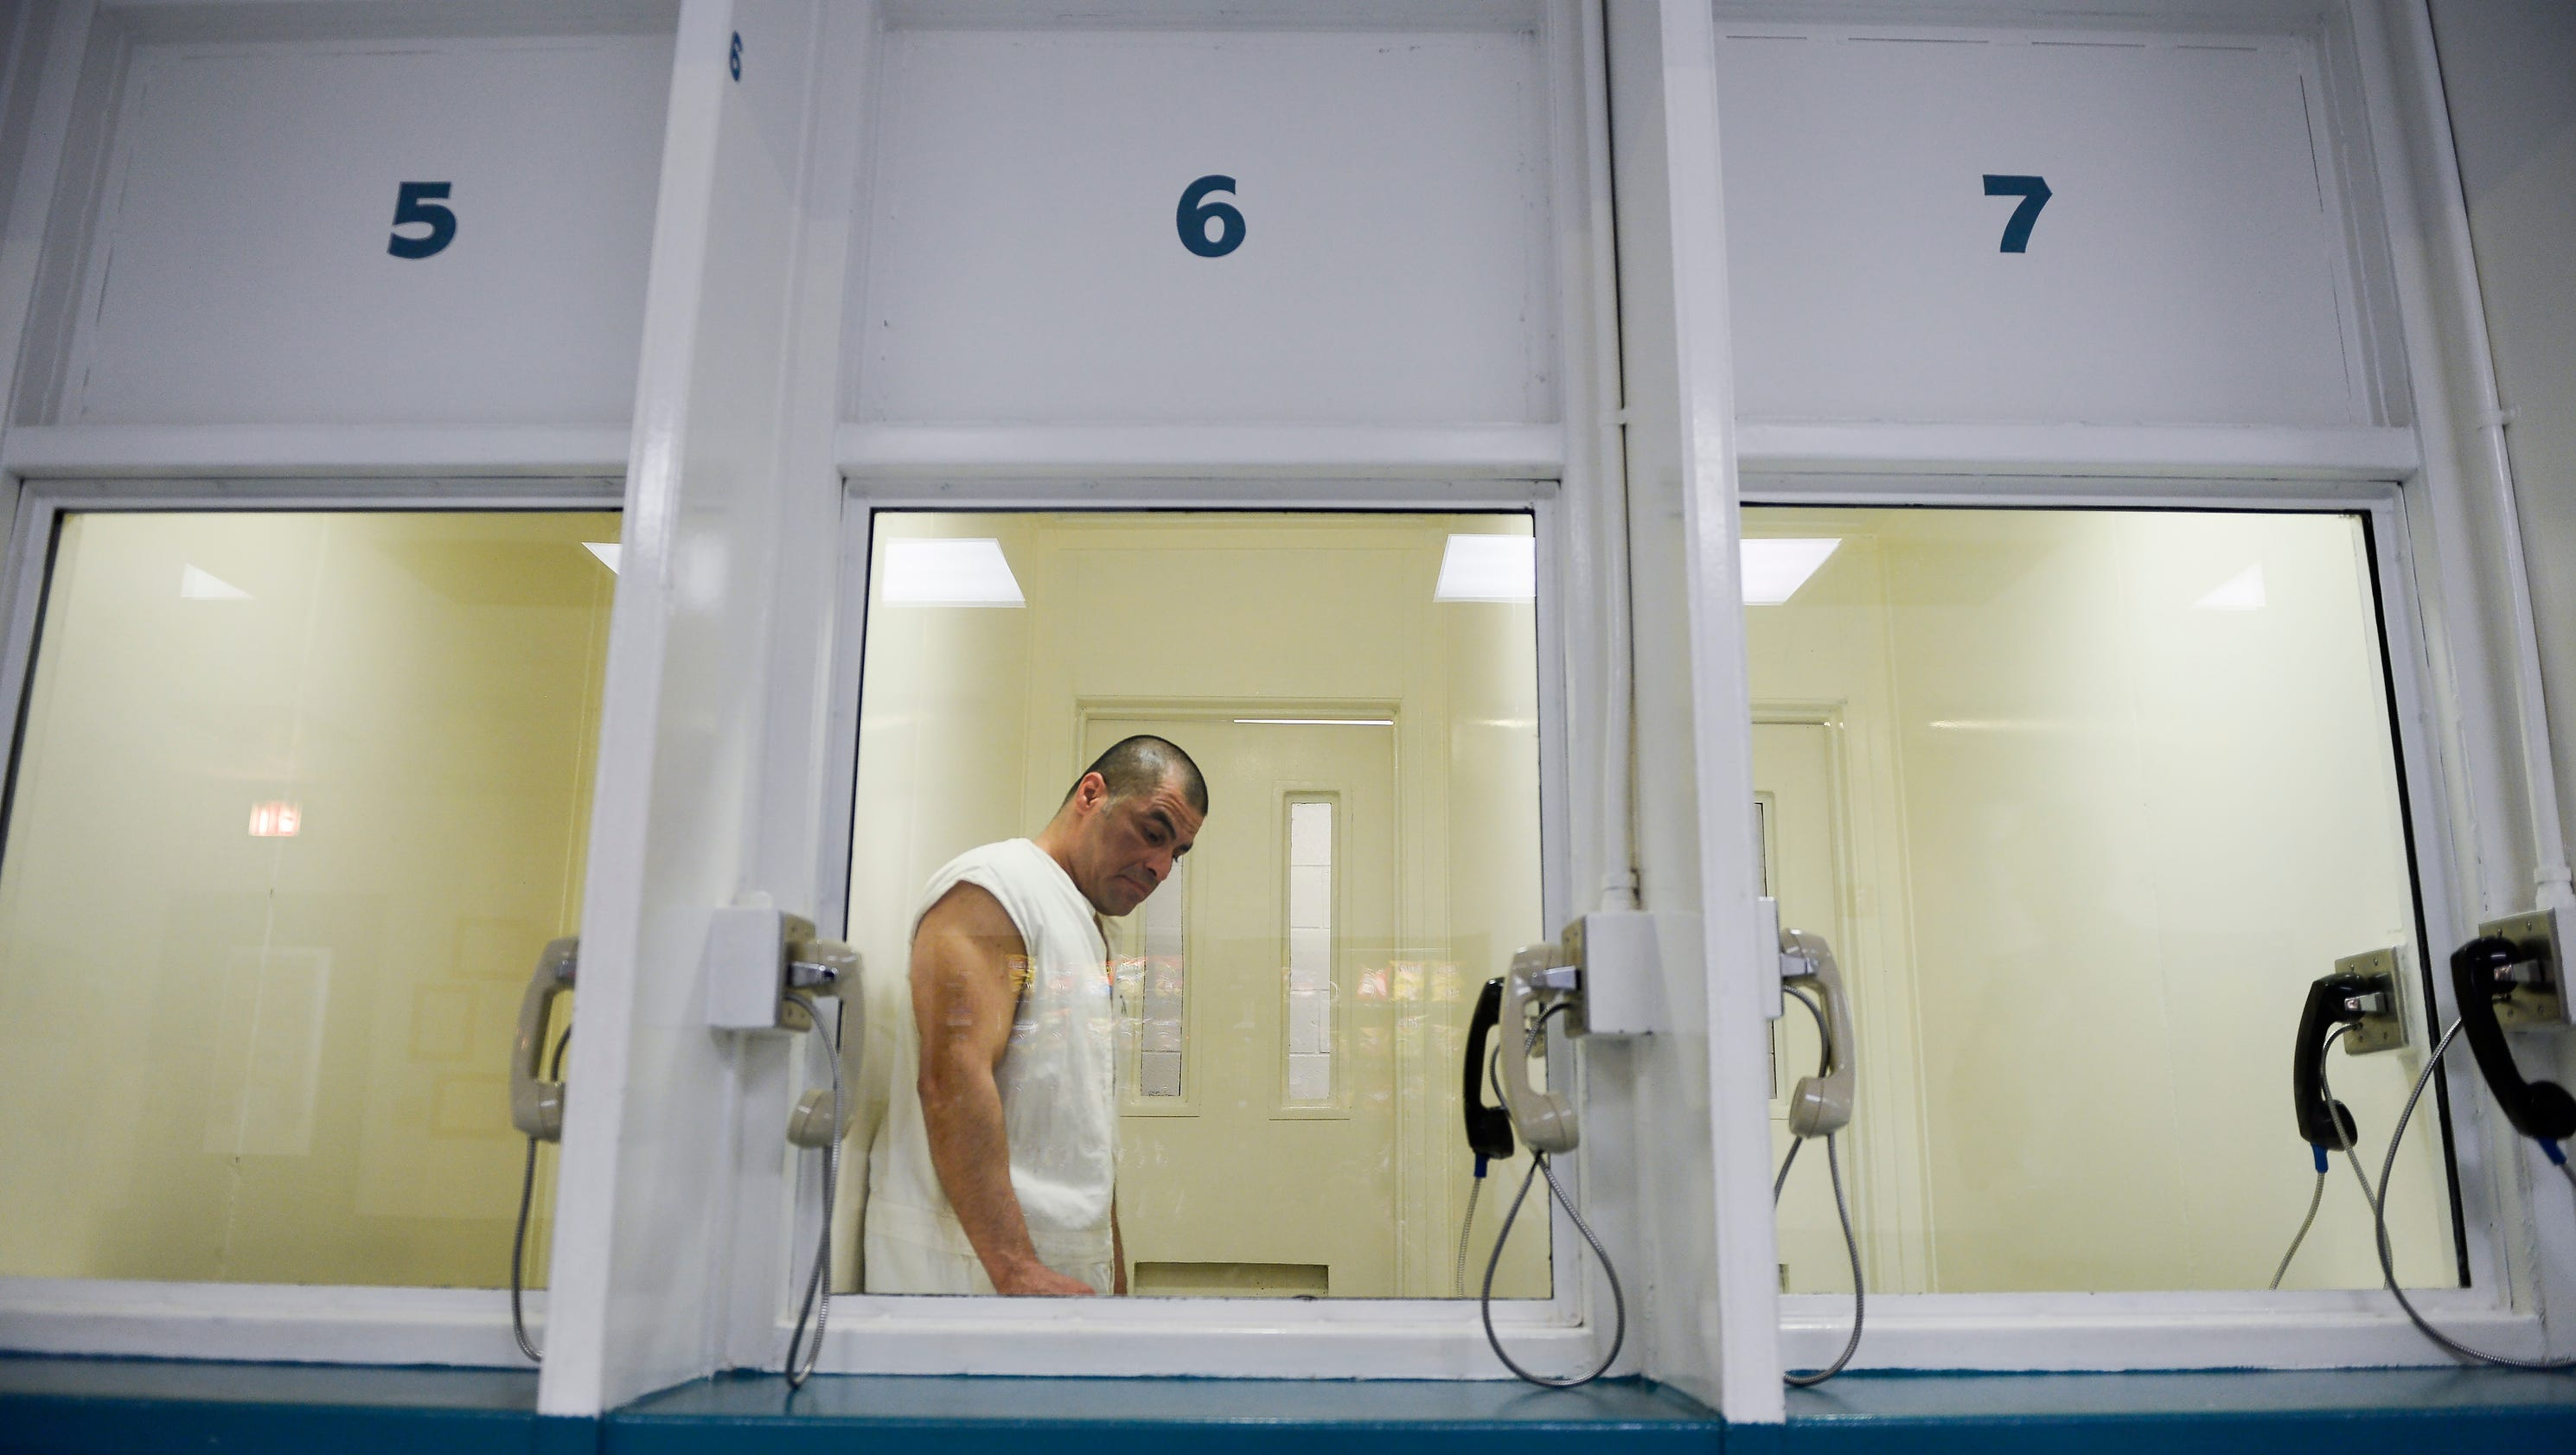 an introduction to the analysis of solitary confinement Final draft research paper  introduction since the early 1800s in the united states, solitary confinement has been used for inmates who need to recover from.